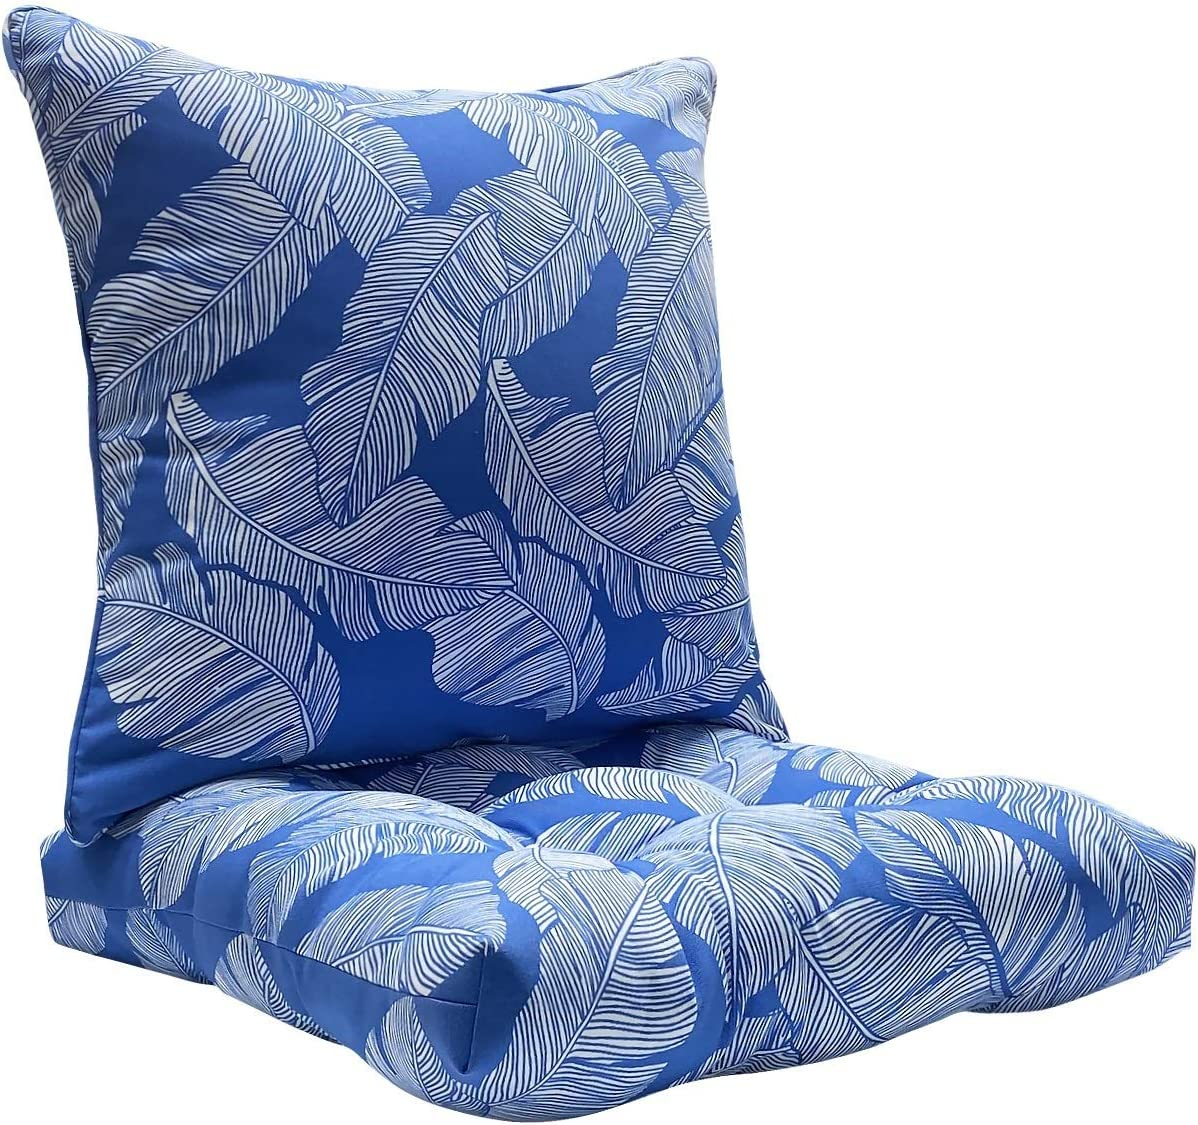 FBTS Prime Outdoor Chair Cushions and Outdoor Pillows Navy 19x19 Inch Patio Decorative Cushion Set for Outdoor Patio Indoor Furniture Garden Home Office